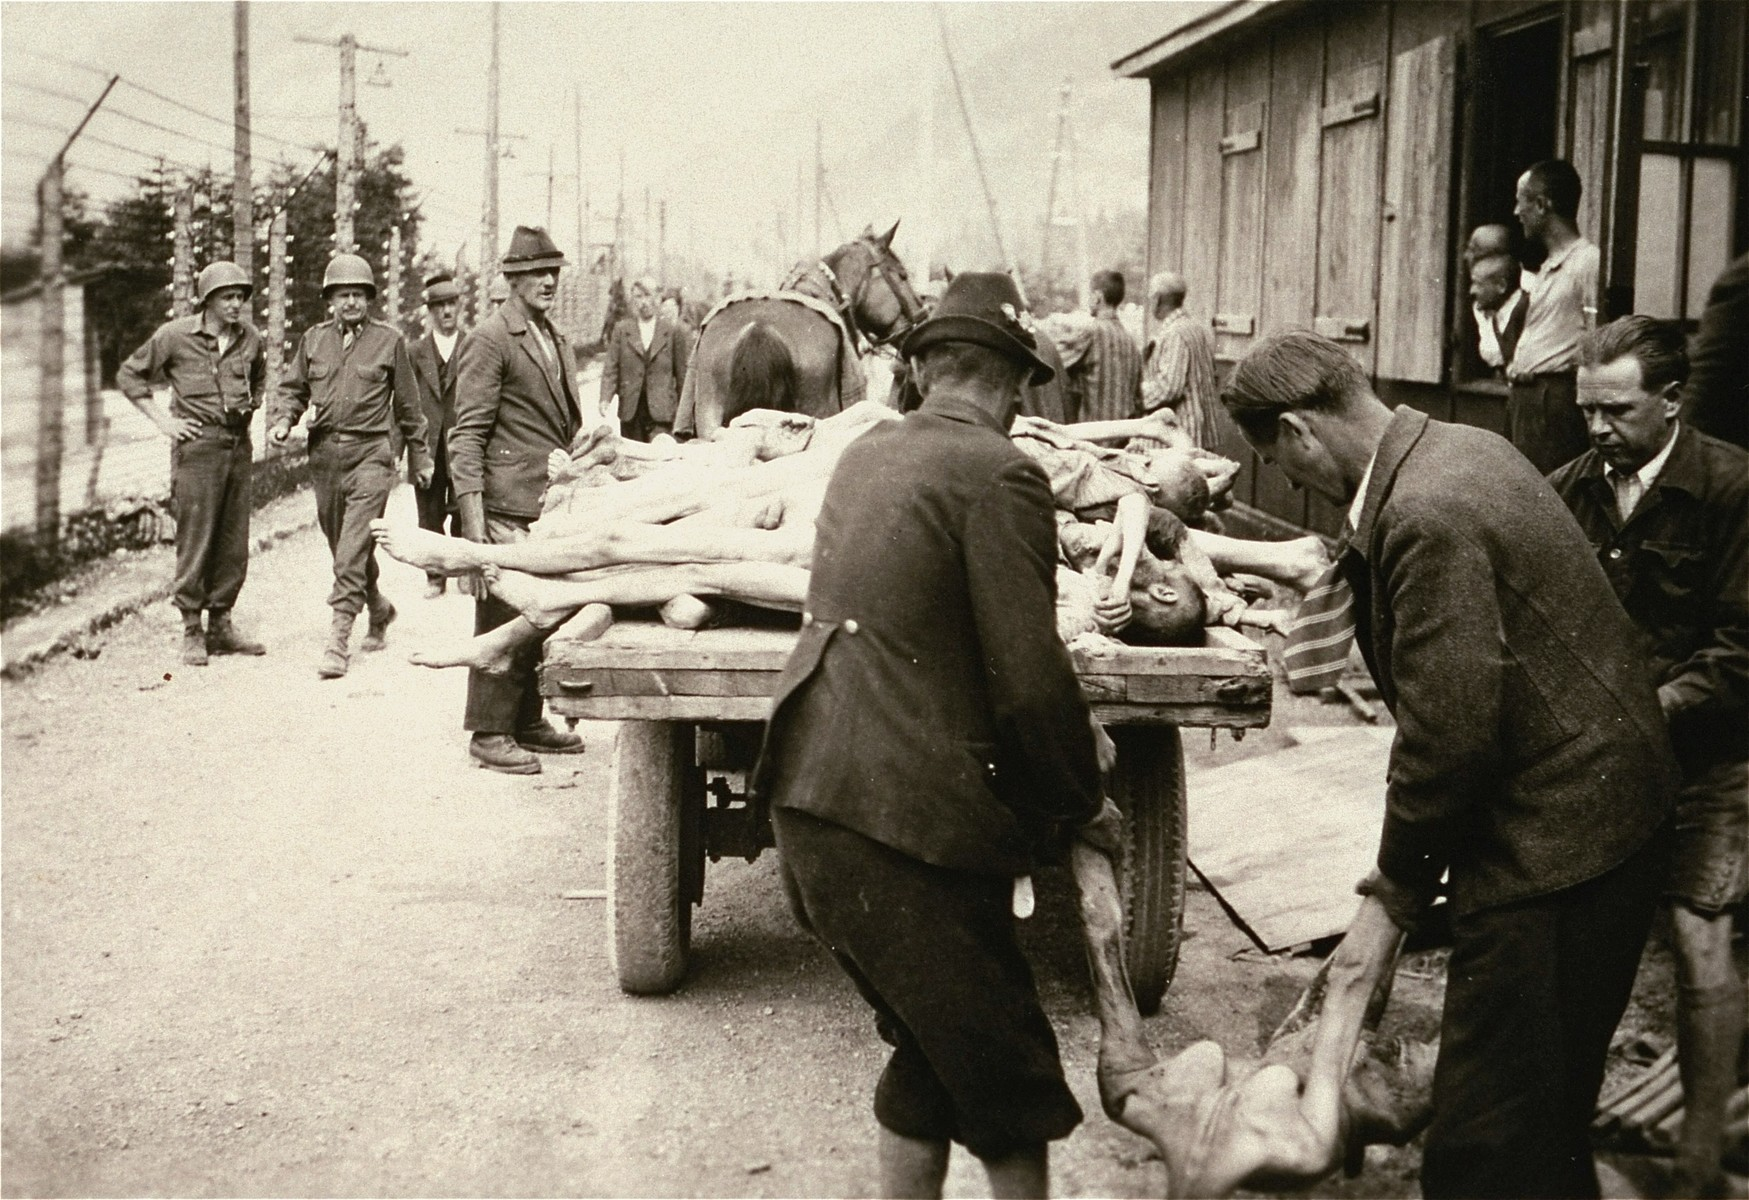 Austrian civilians participate in clearing the dead in the Ebensee concentration camp.  The barracks in the background was found filled with corpses.